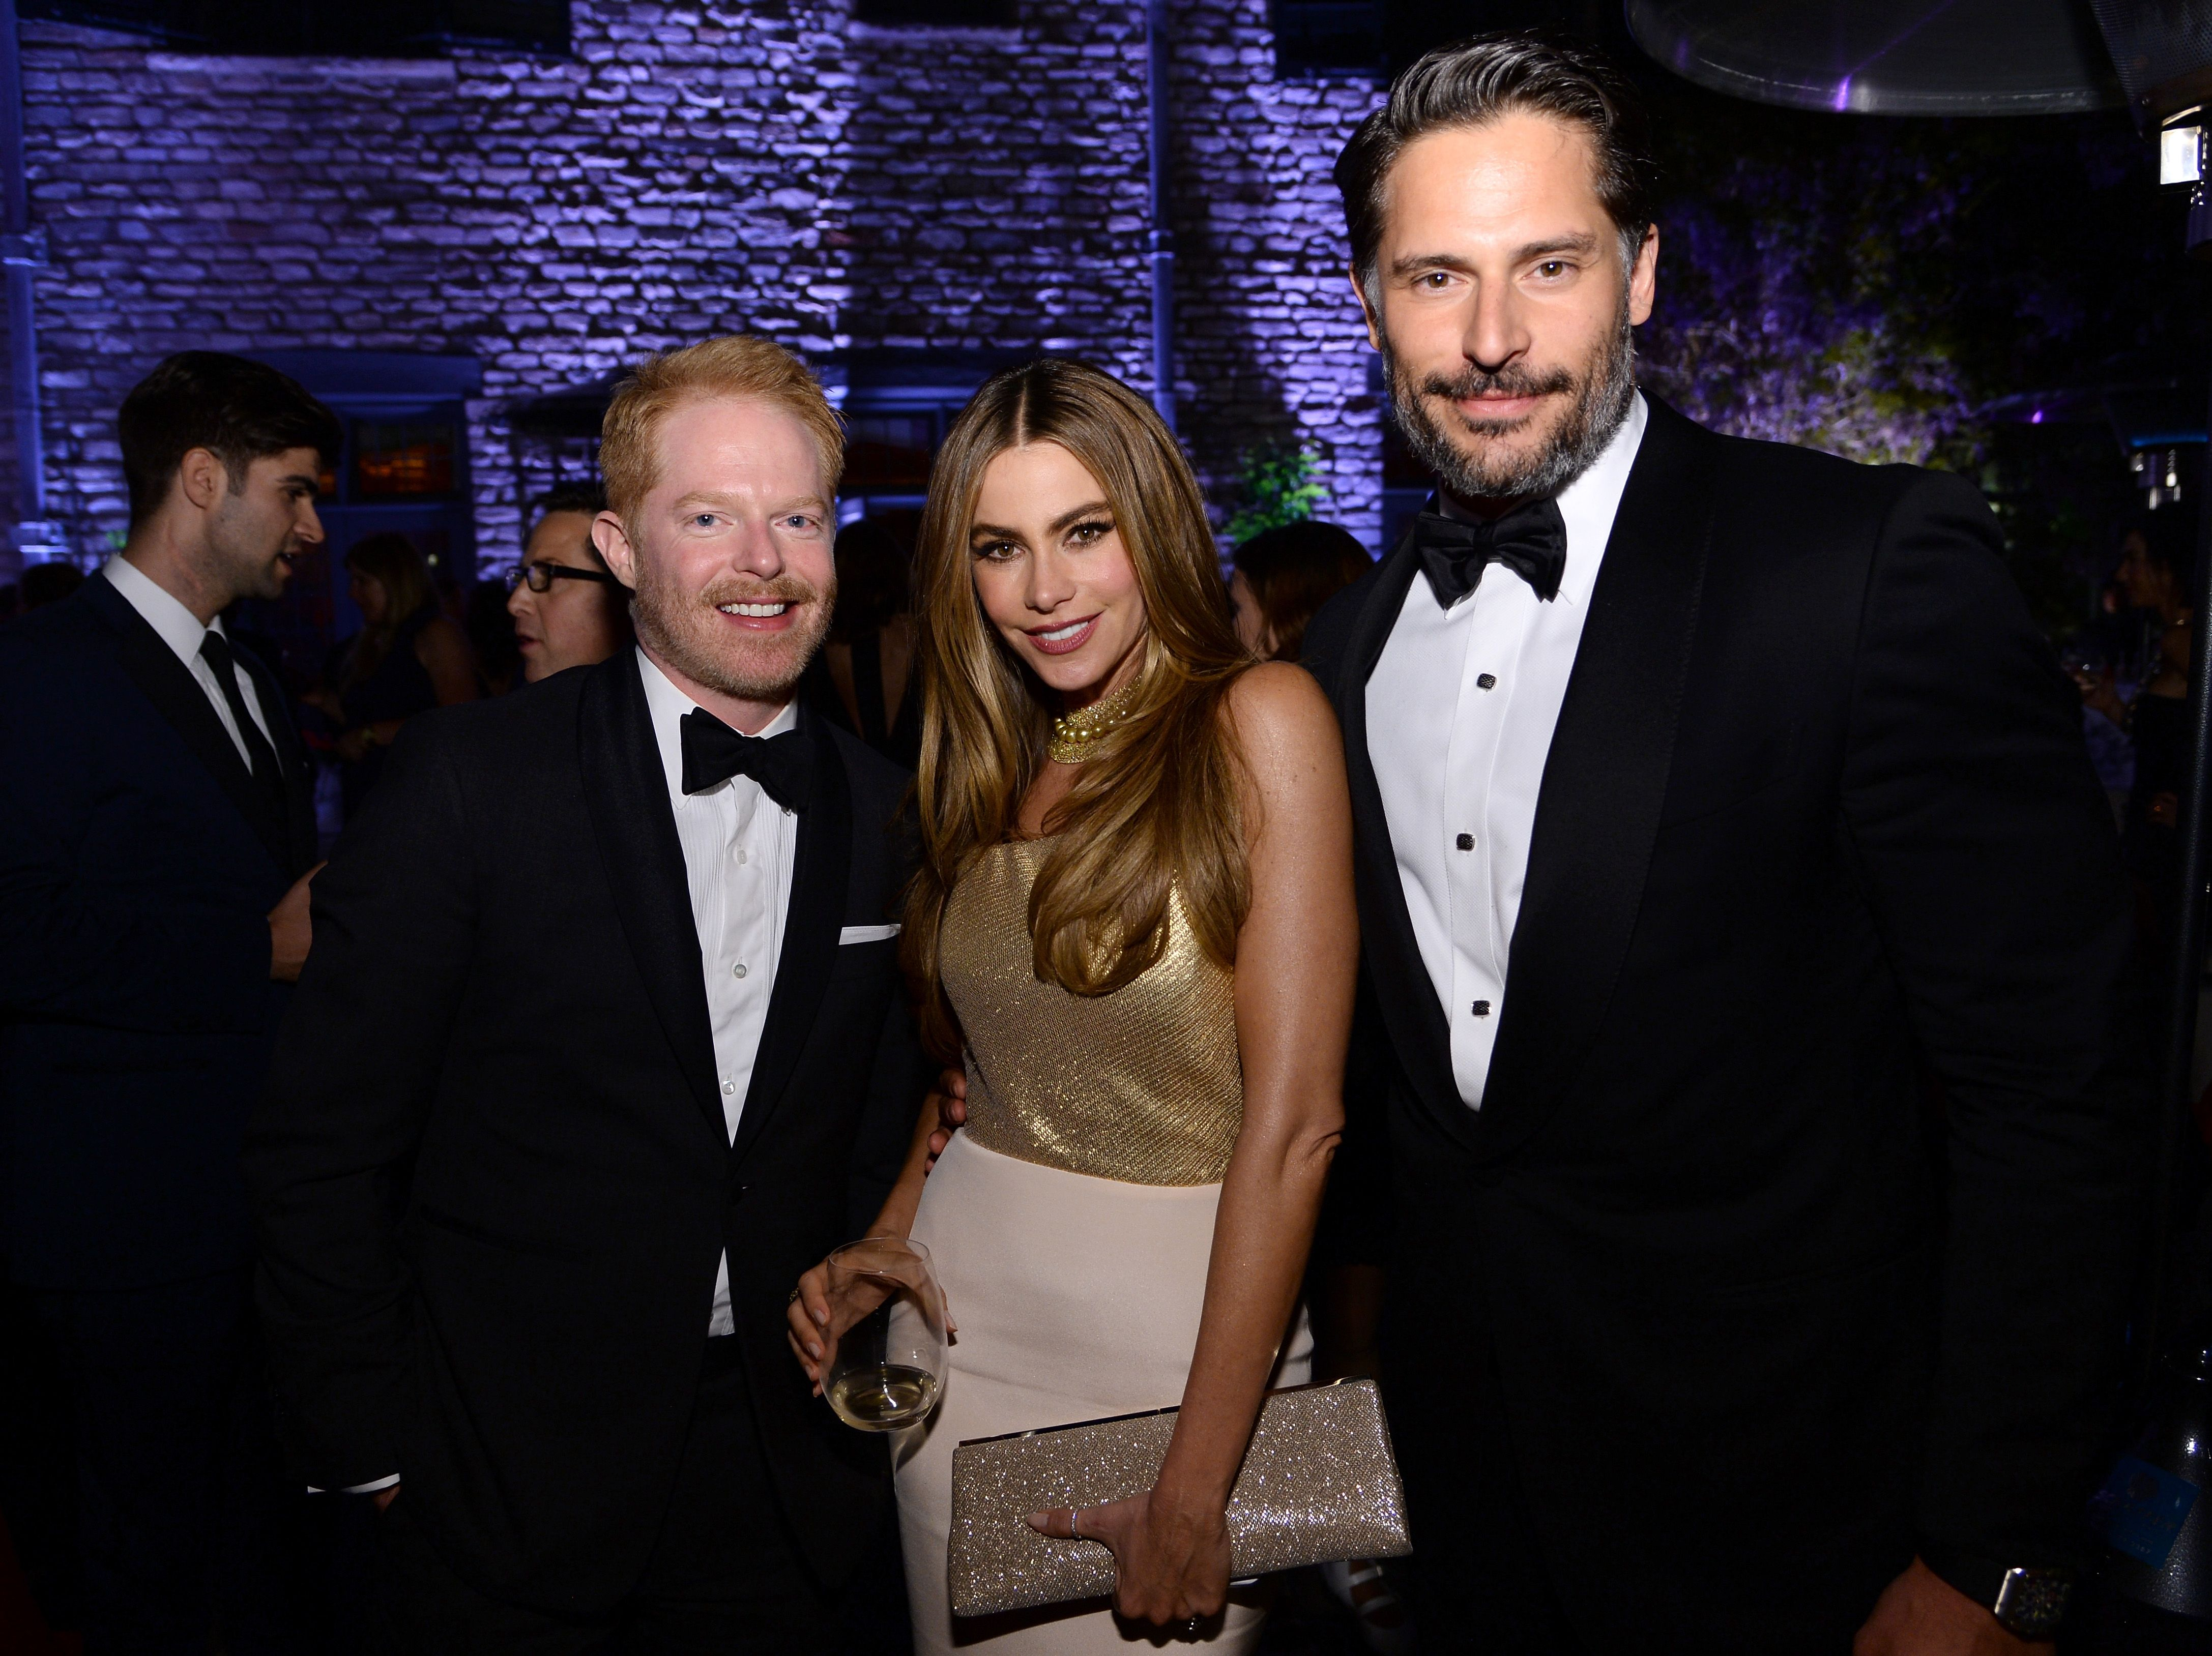 Jesse Tyler Ferguson, Sofia Vergara and Joe Manganiello at the Bloomberg & Vanity Fair cocktail reception in May 2014 in Washington, DC | Source: Getty Images